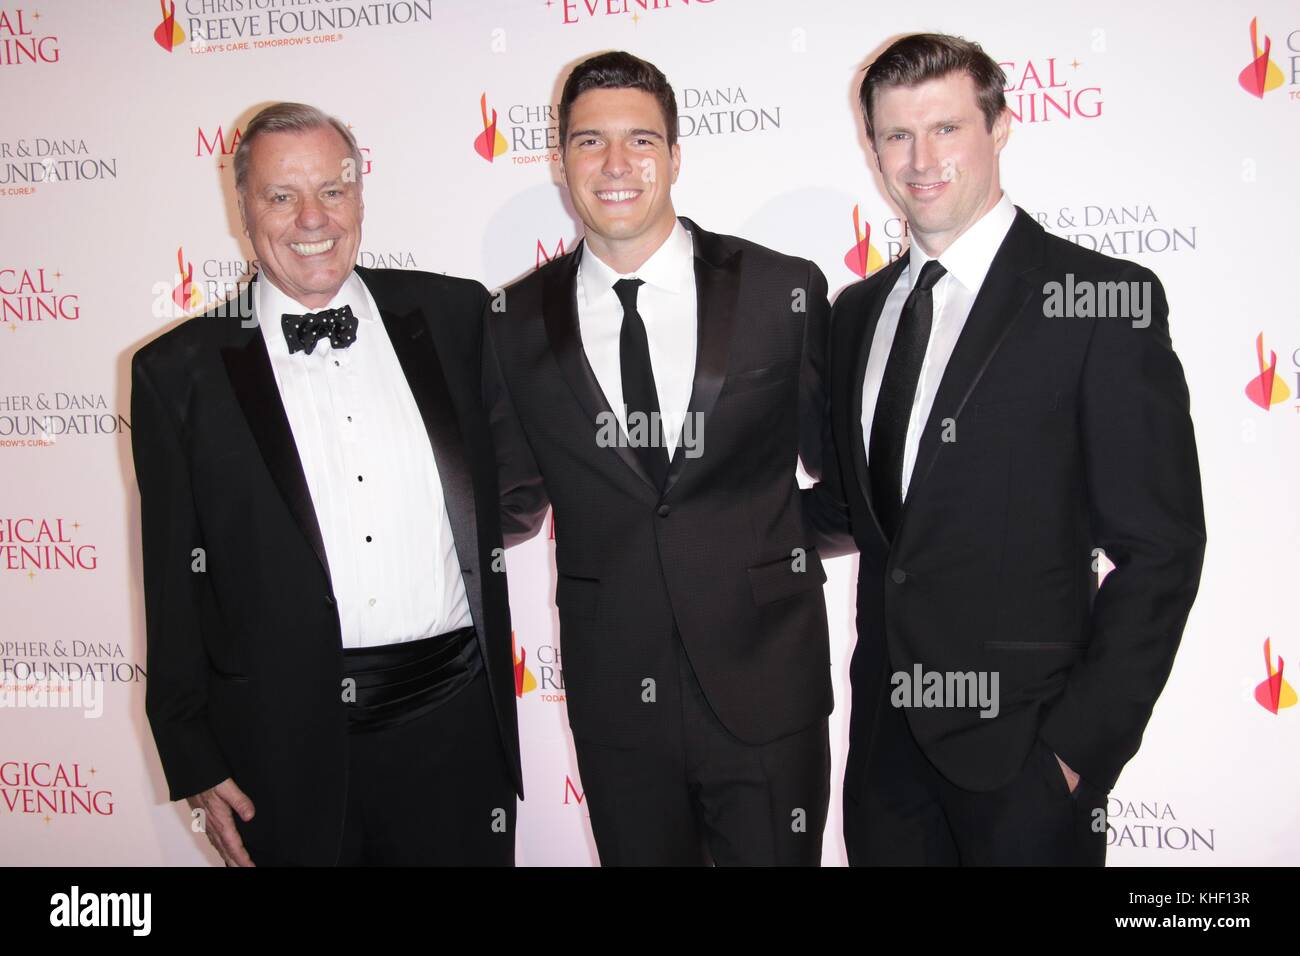 New York, NY, USA. 16th Nov, 2017. Peter Wilderotter, Matthew Reeve, William Reeve at The Christopher & Dana - Stock Image